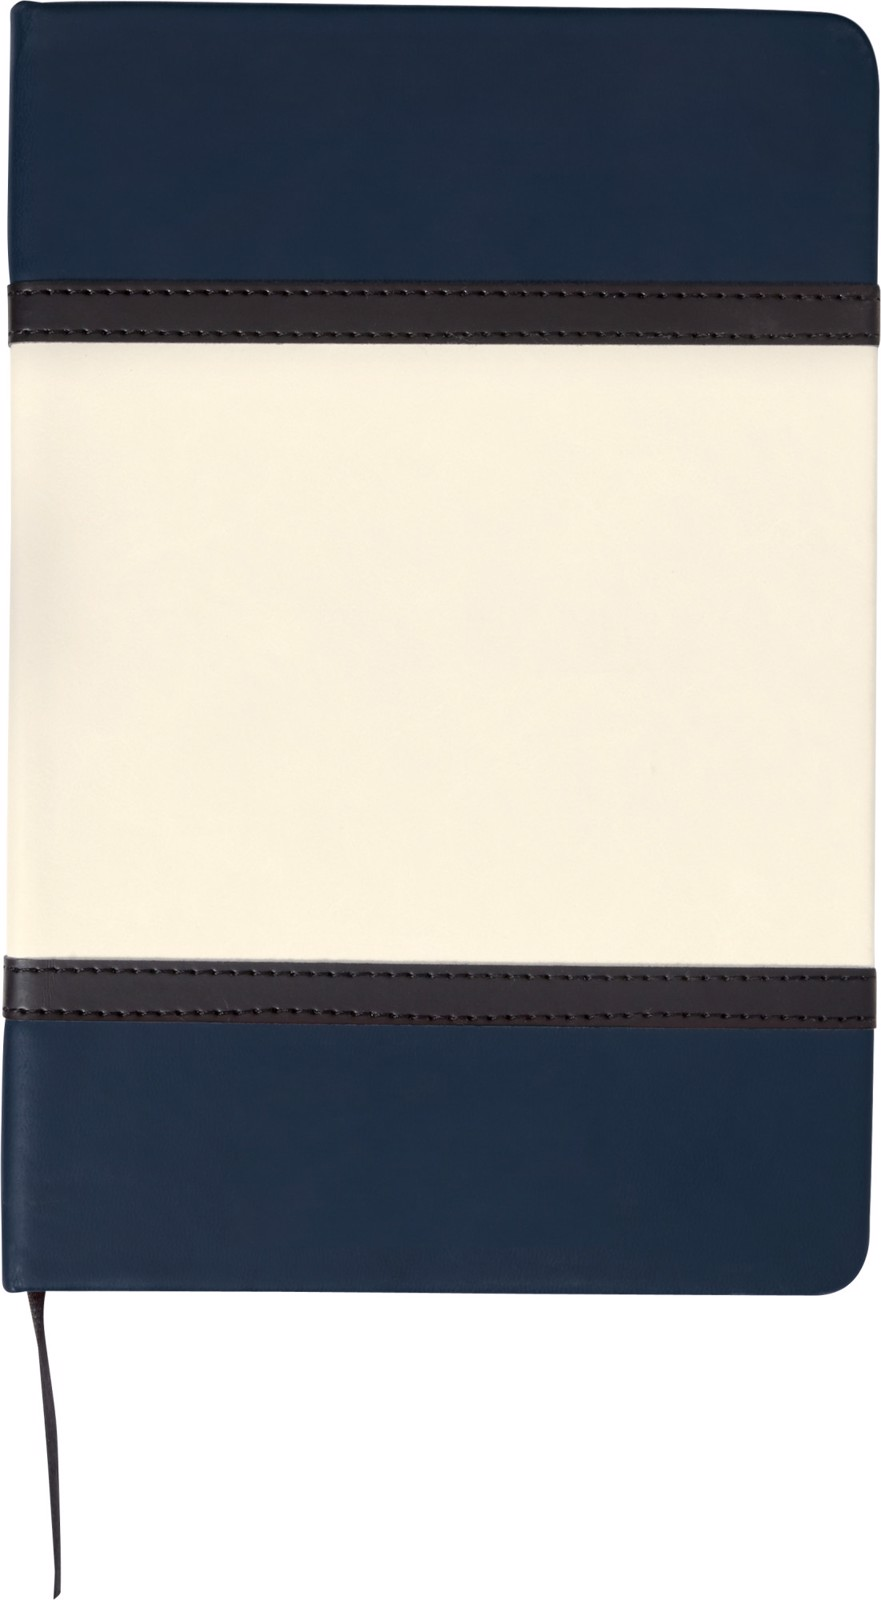 A5 Soft feel notebook with PU cover - Blue